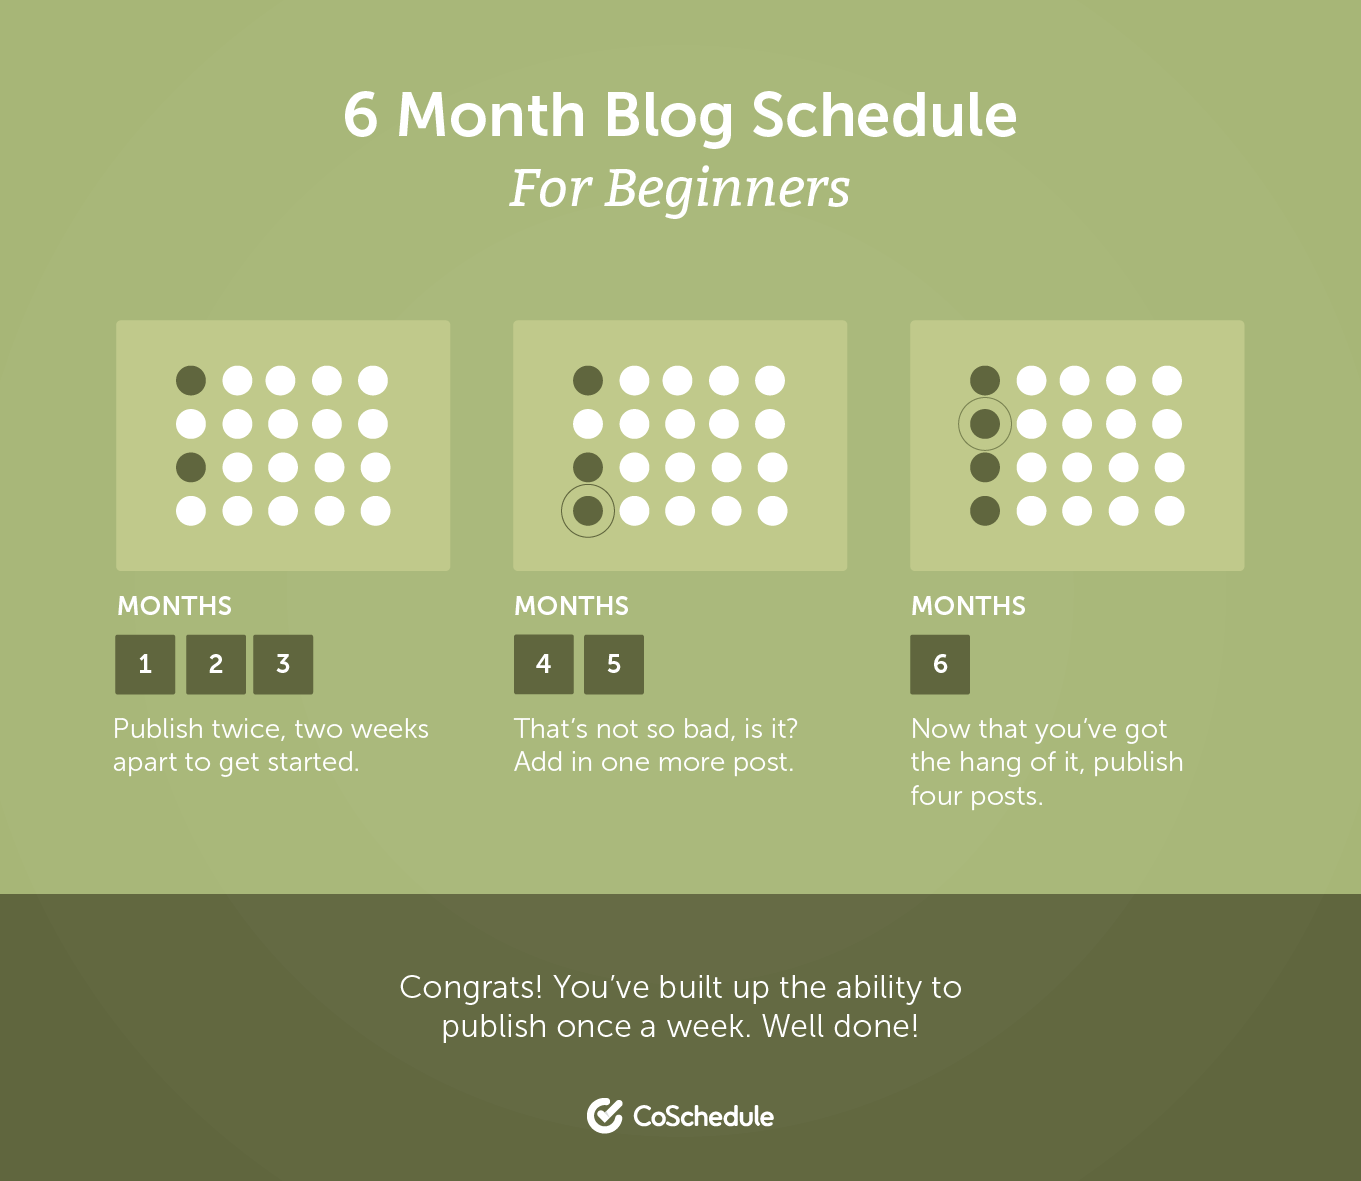 6 month blog schedule for beginners